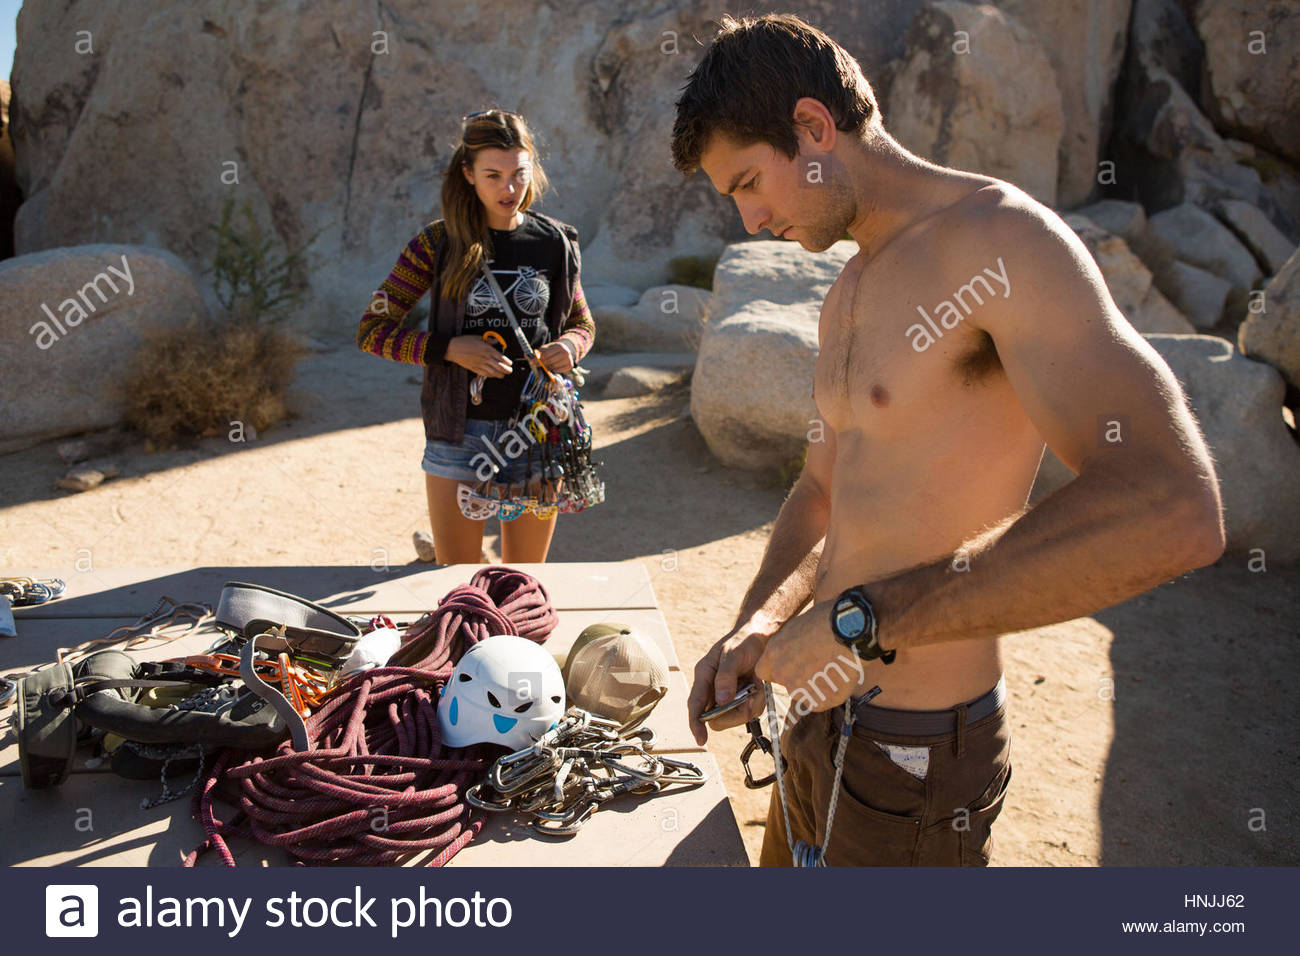 Climbers gearing up for a day of climbing in the desert of Joshua Tree National Park. - Stock Image